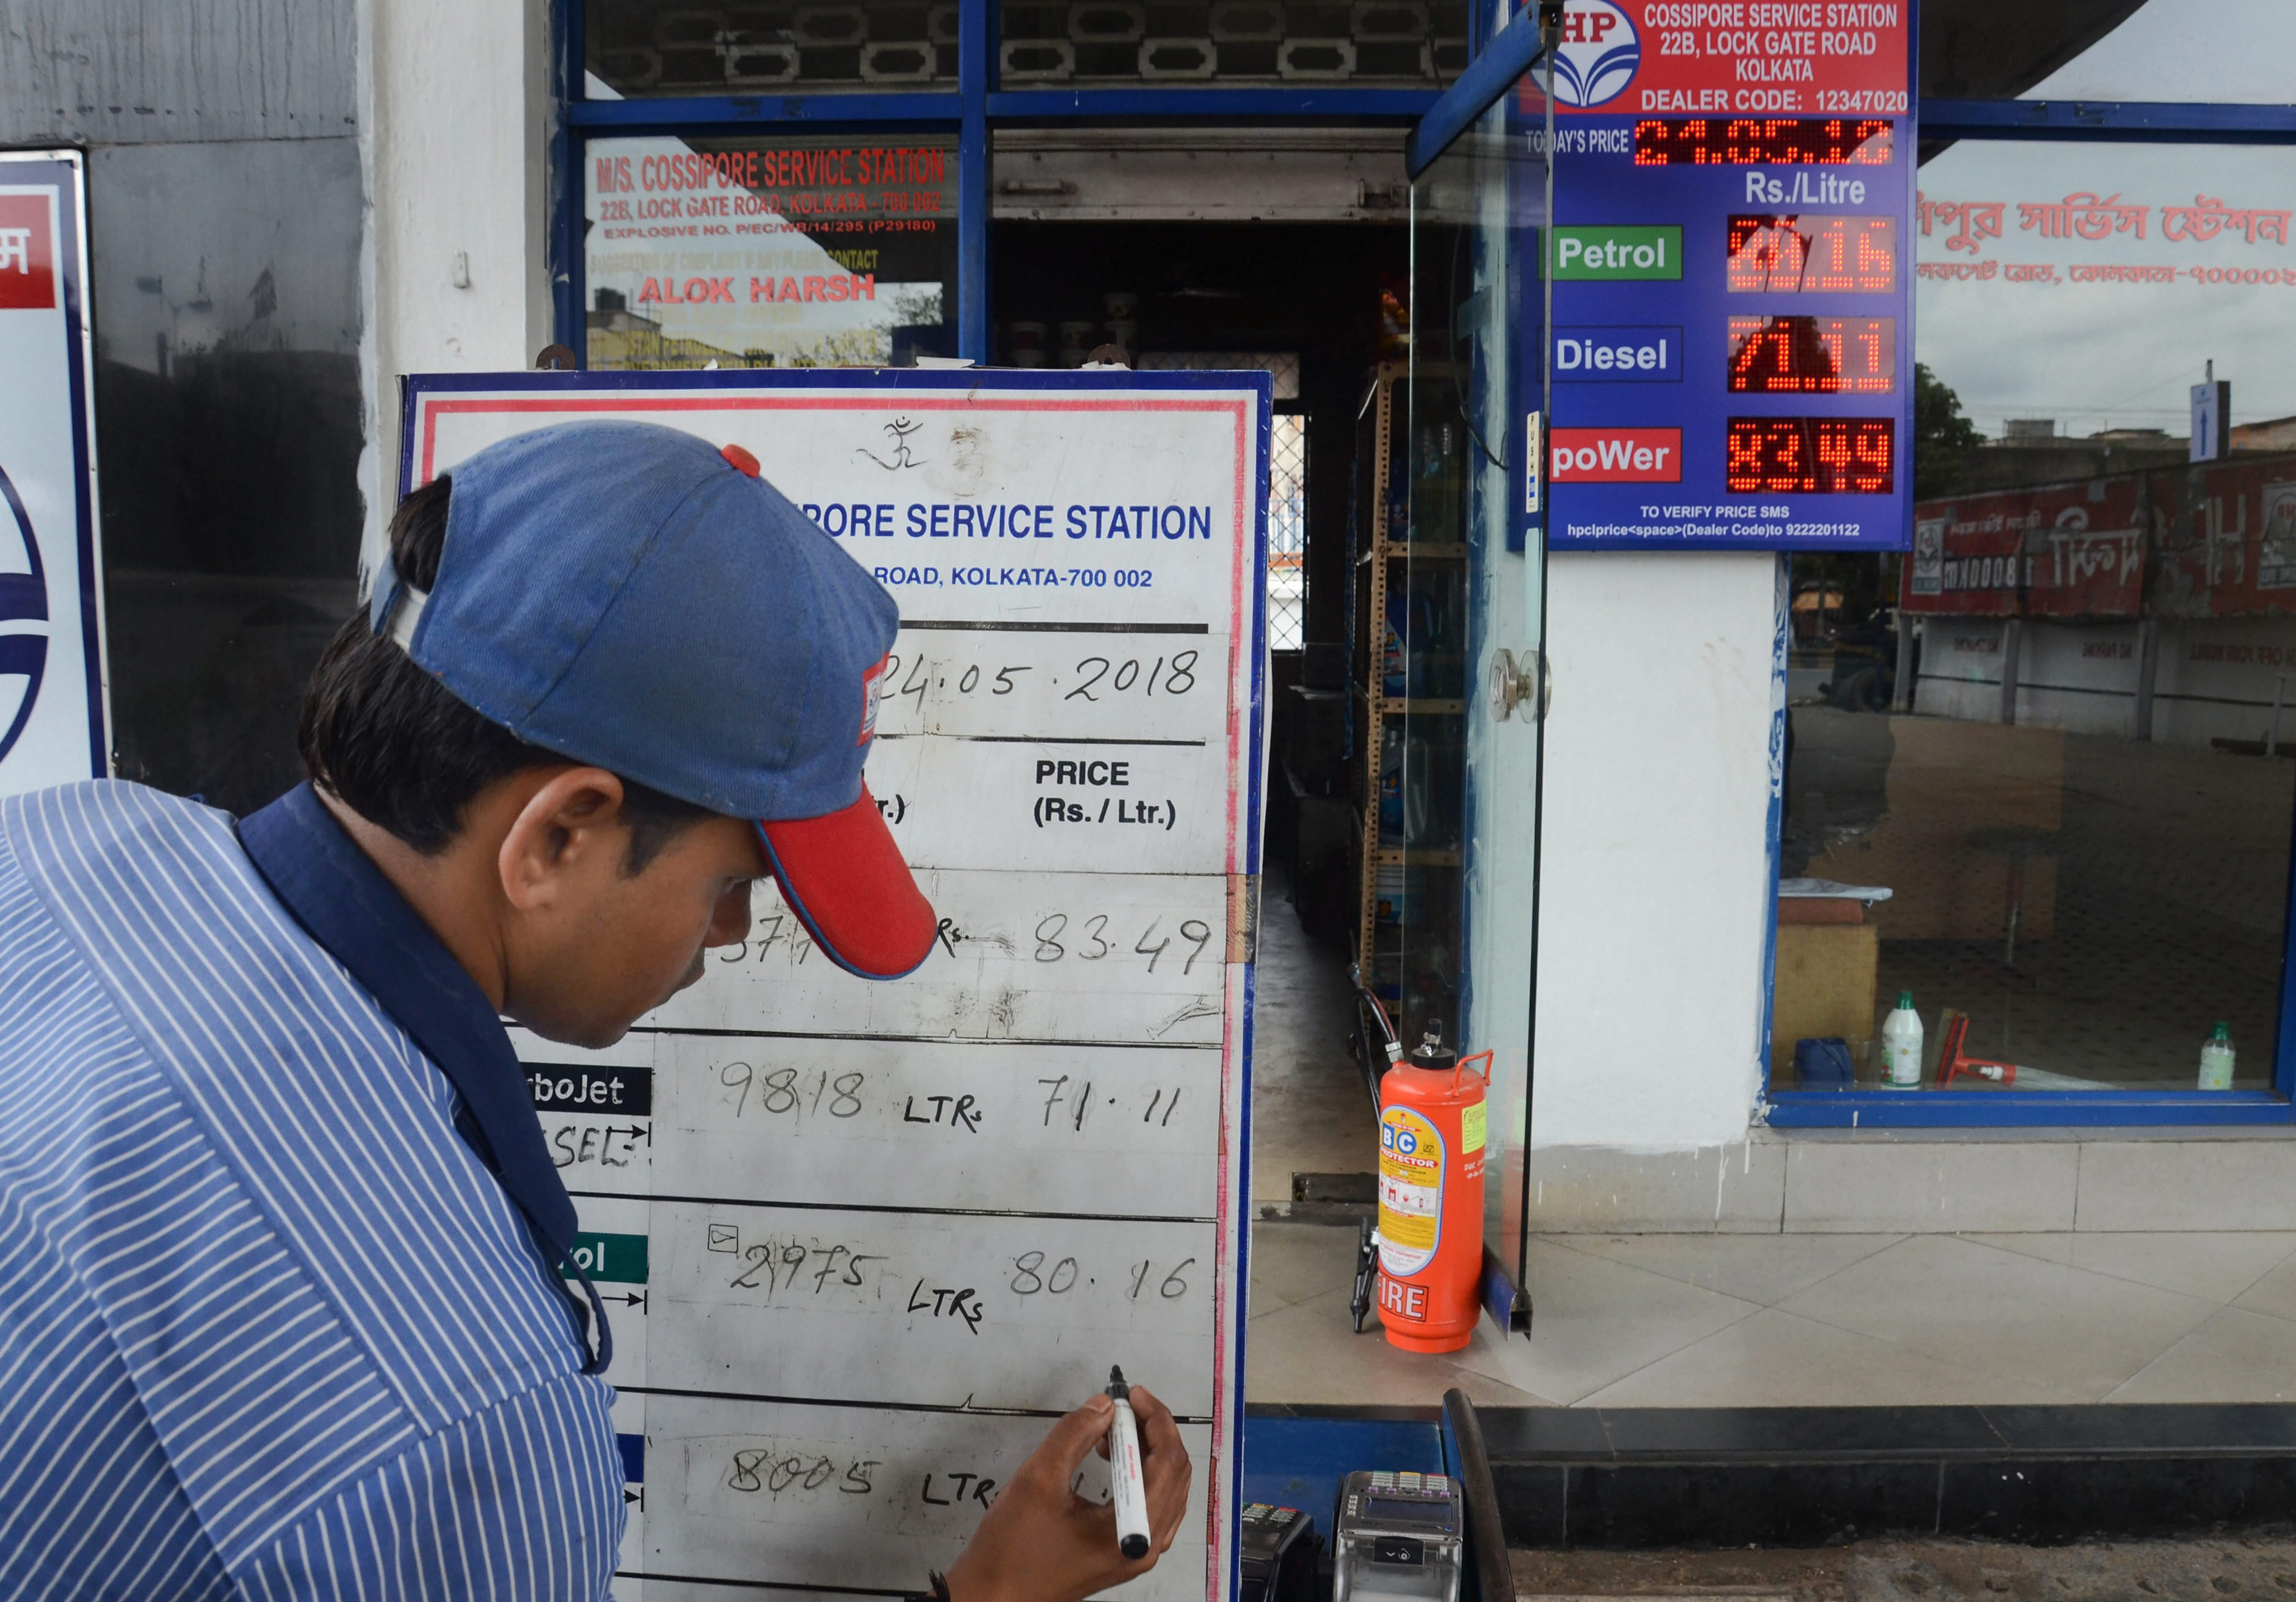 Global oil prices fell, govt hurting common man with high fuel taxes